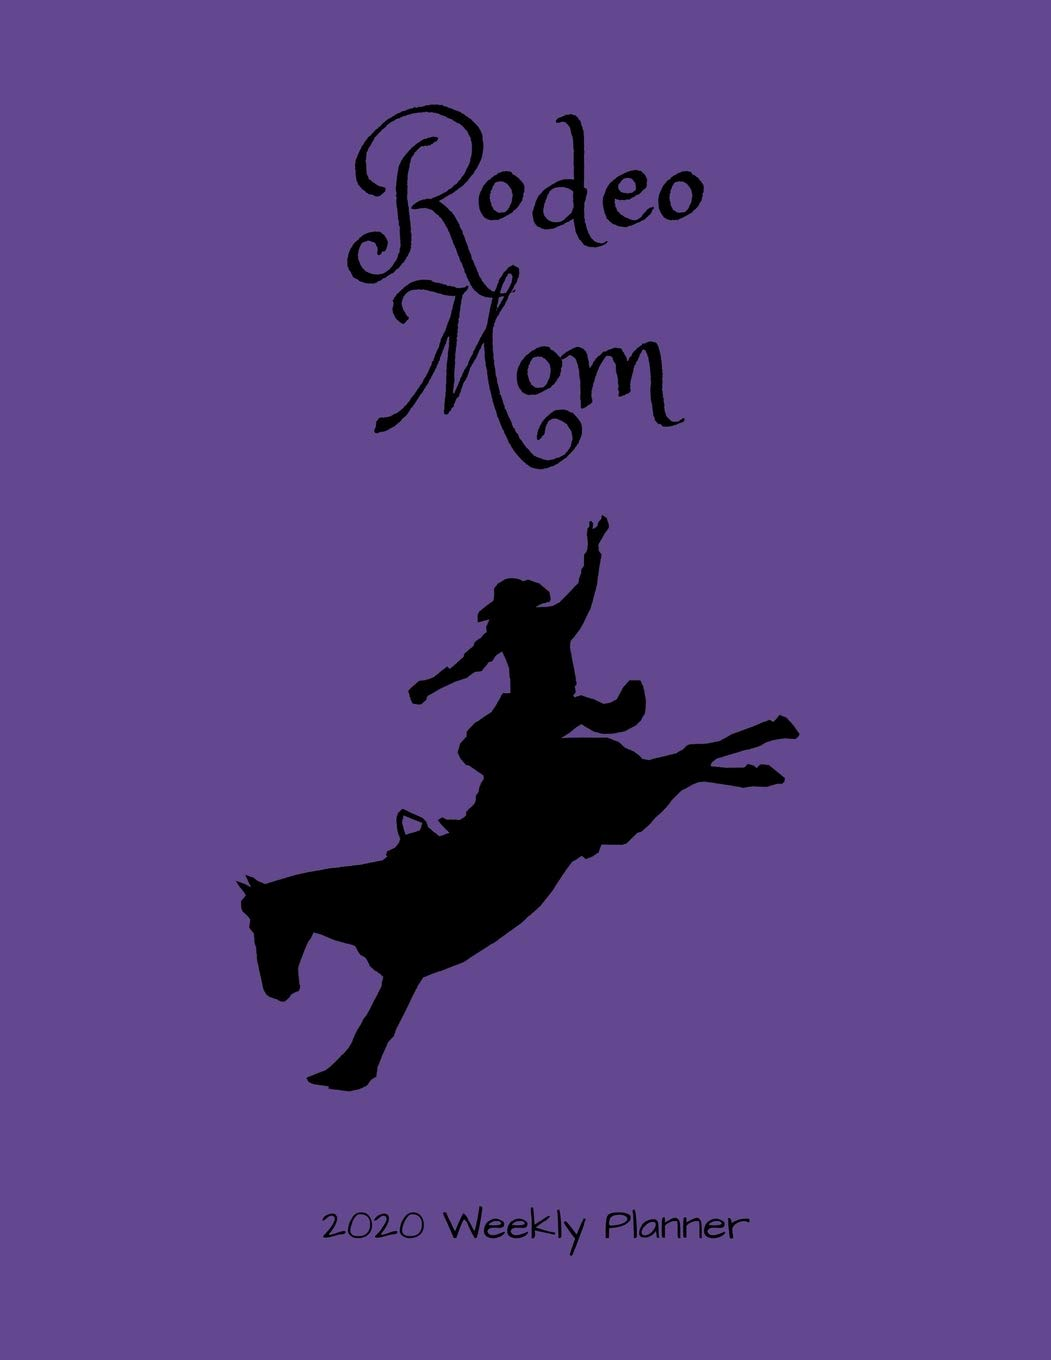 Rodeo Calendar 2020 Amazon.com: Rodeo Mom 2020 Weekly Planner: A 52 Week Calendar For